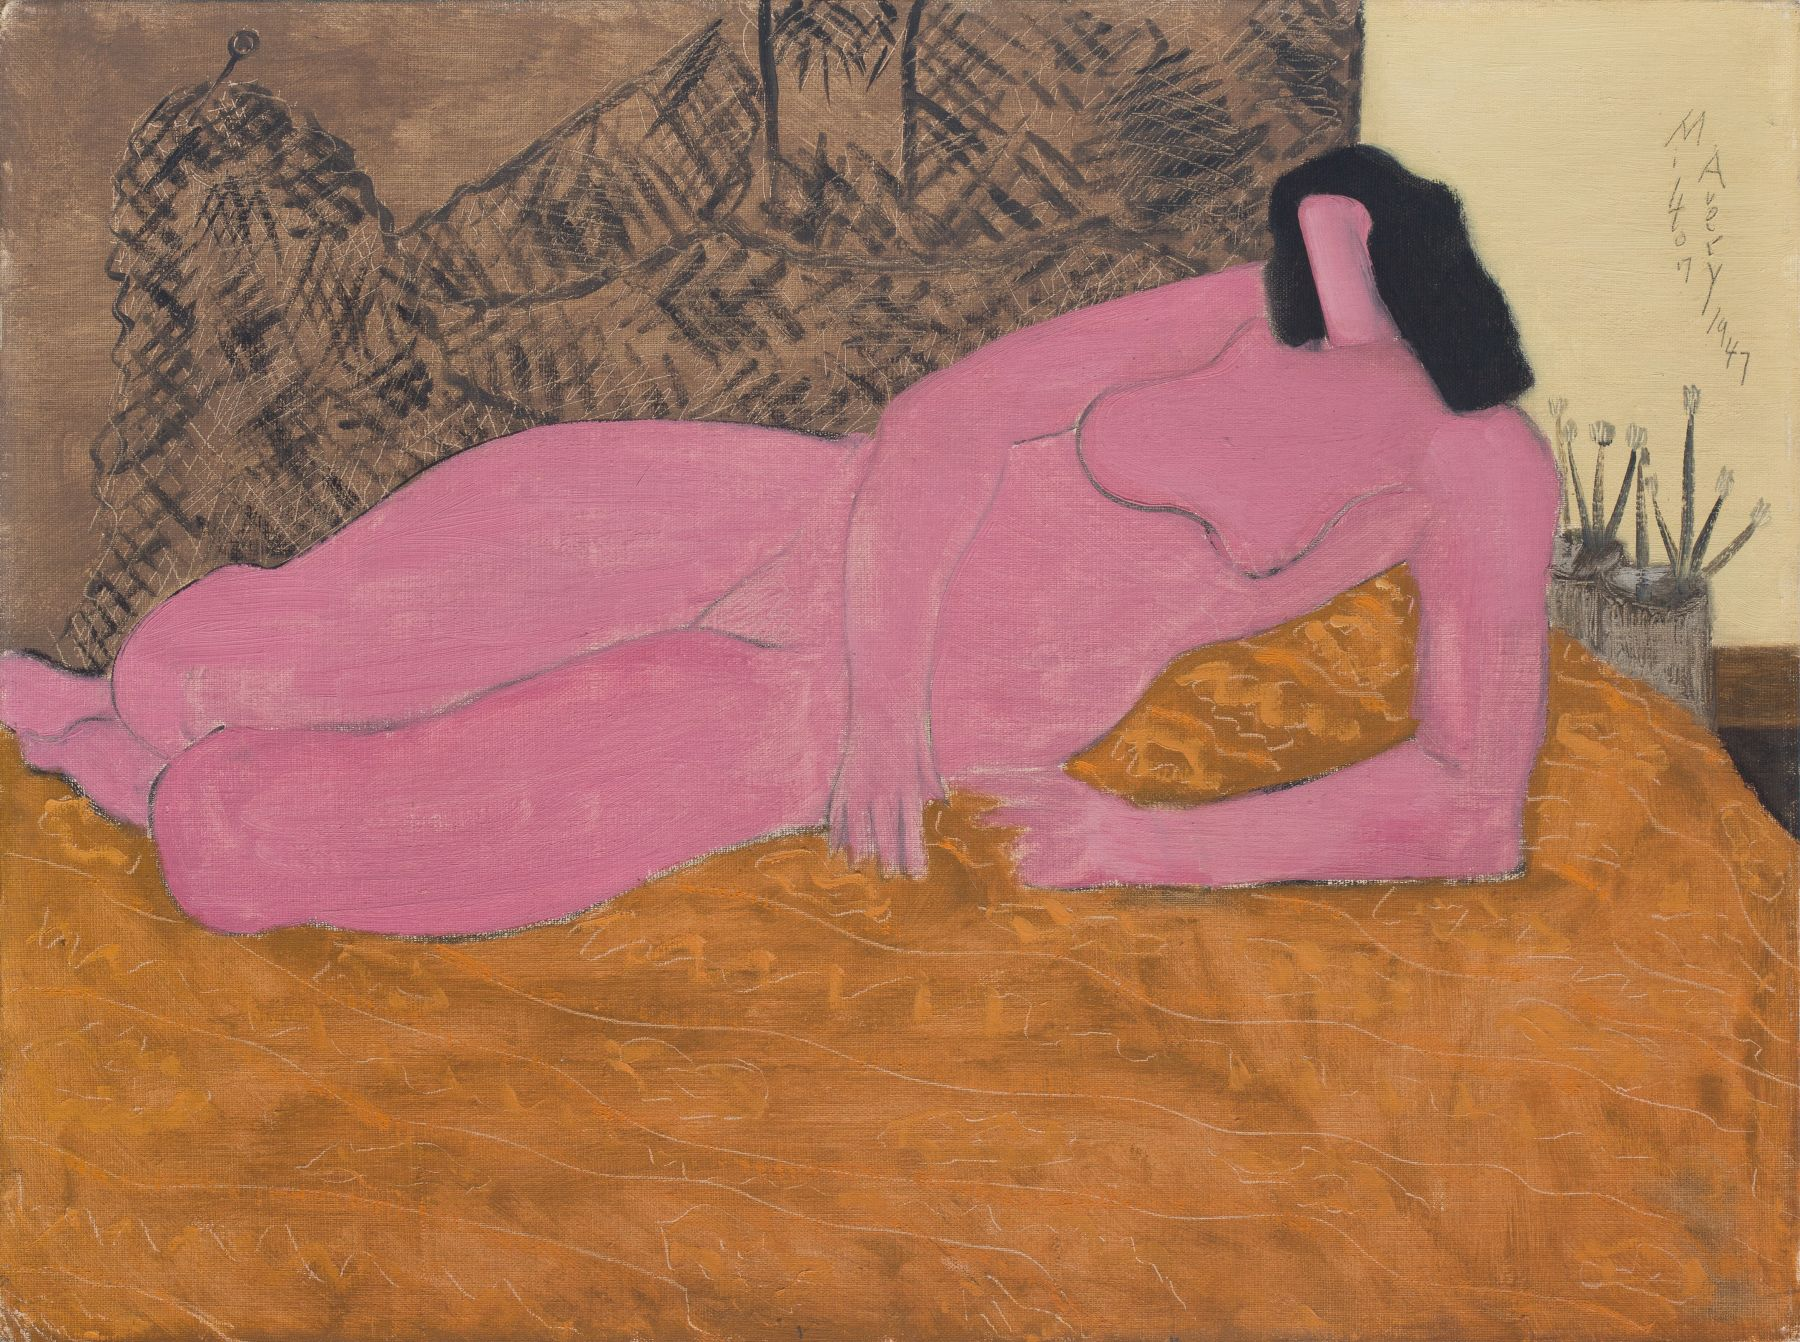 Pink Nude, 1947. Oil on canvas, 18 x 24 inches.